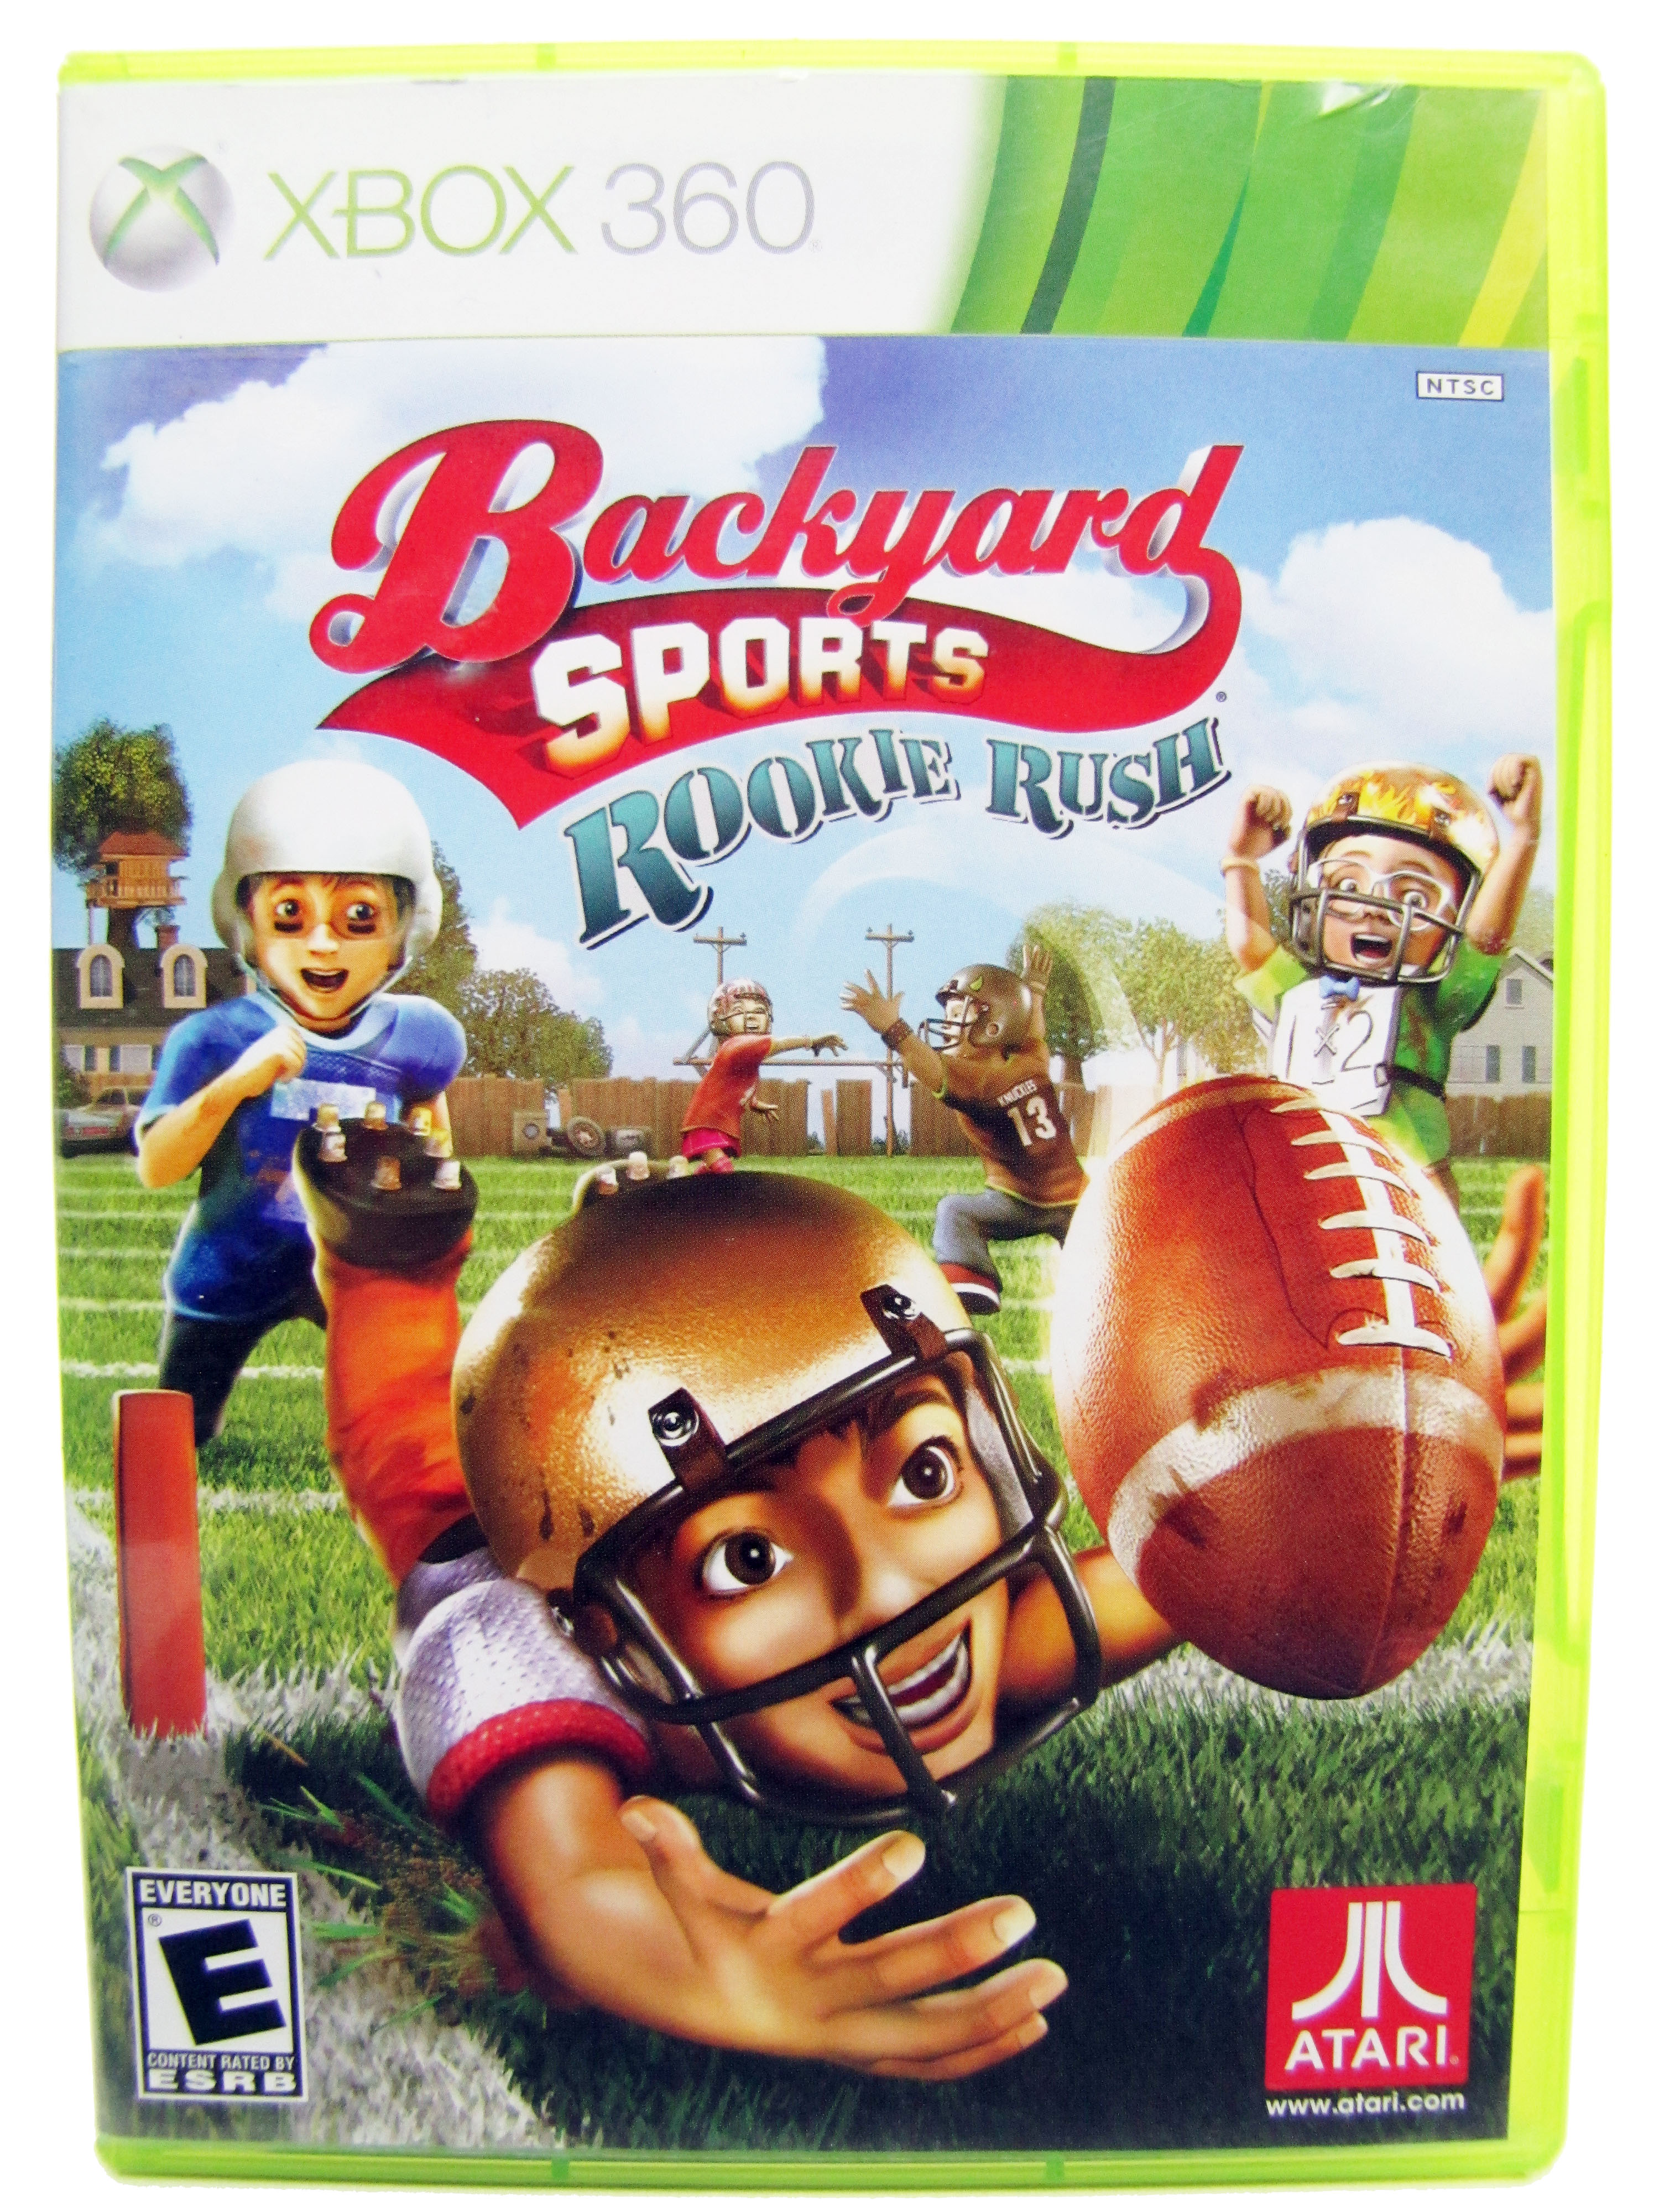 XBOX 360 Backyard Sports: Rookie Rush Complete - 2010